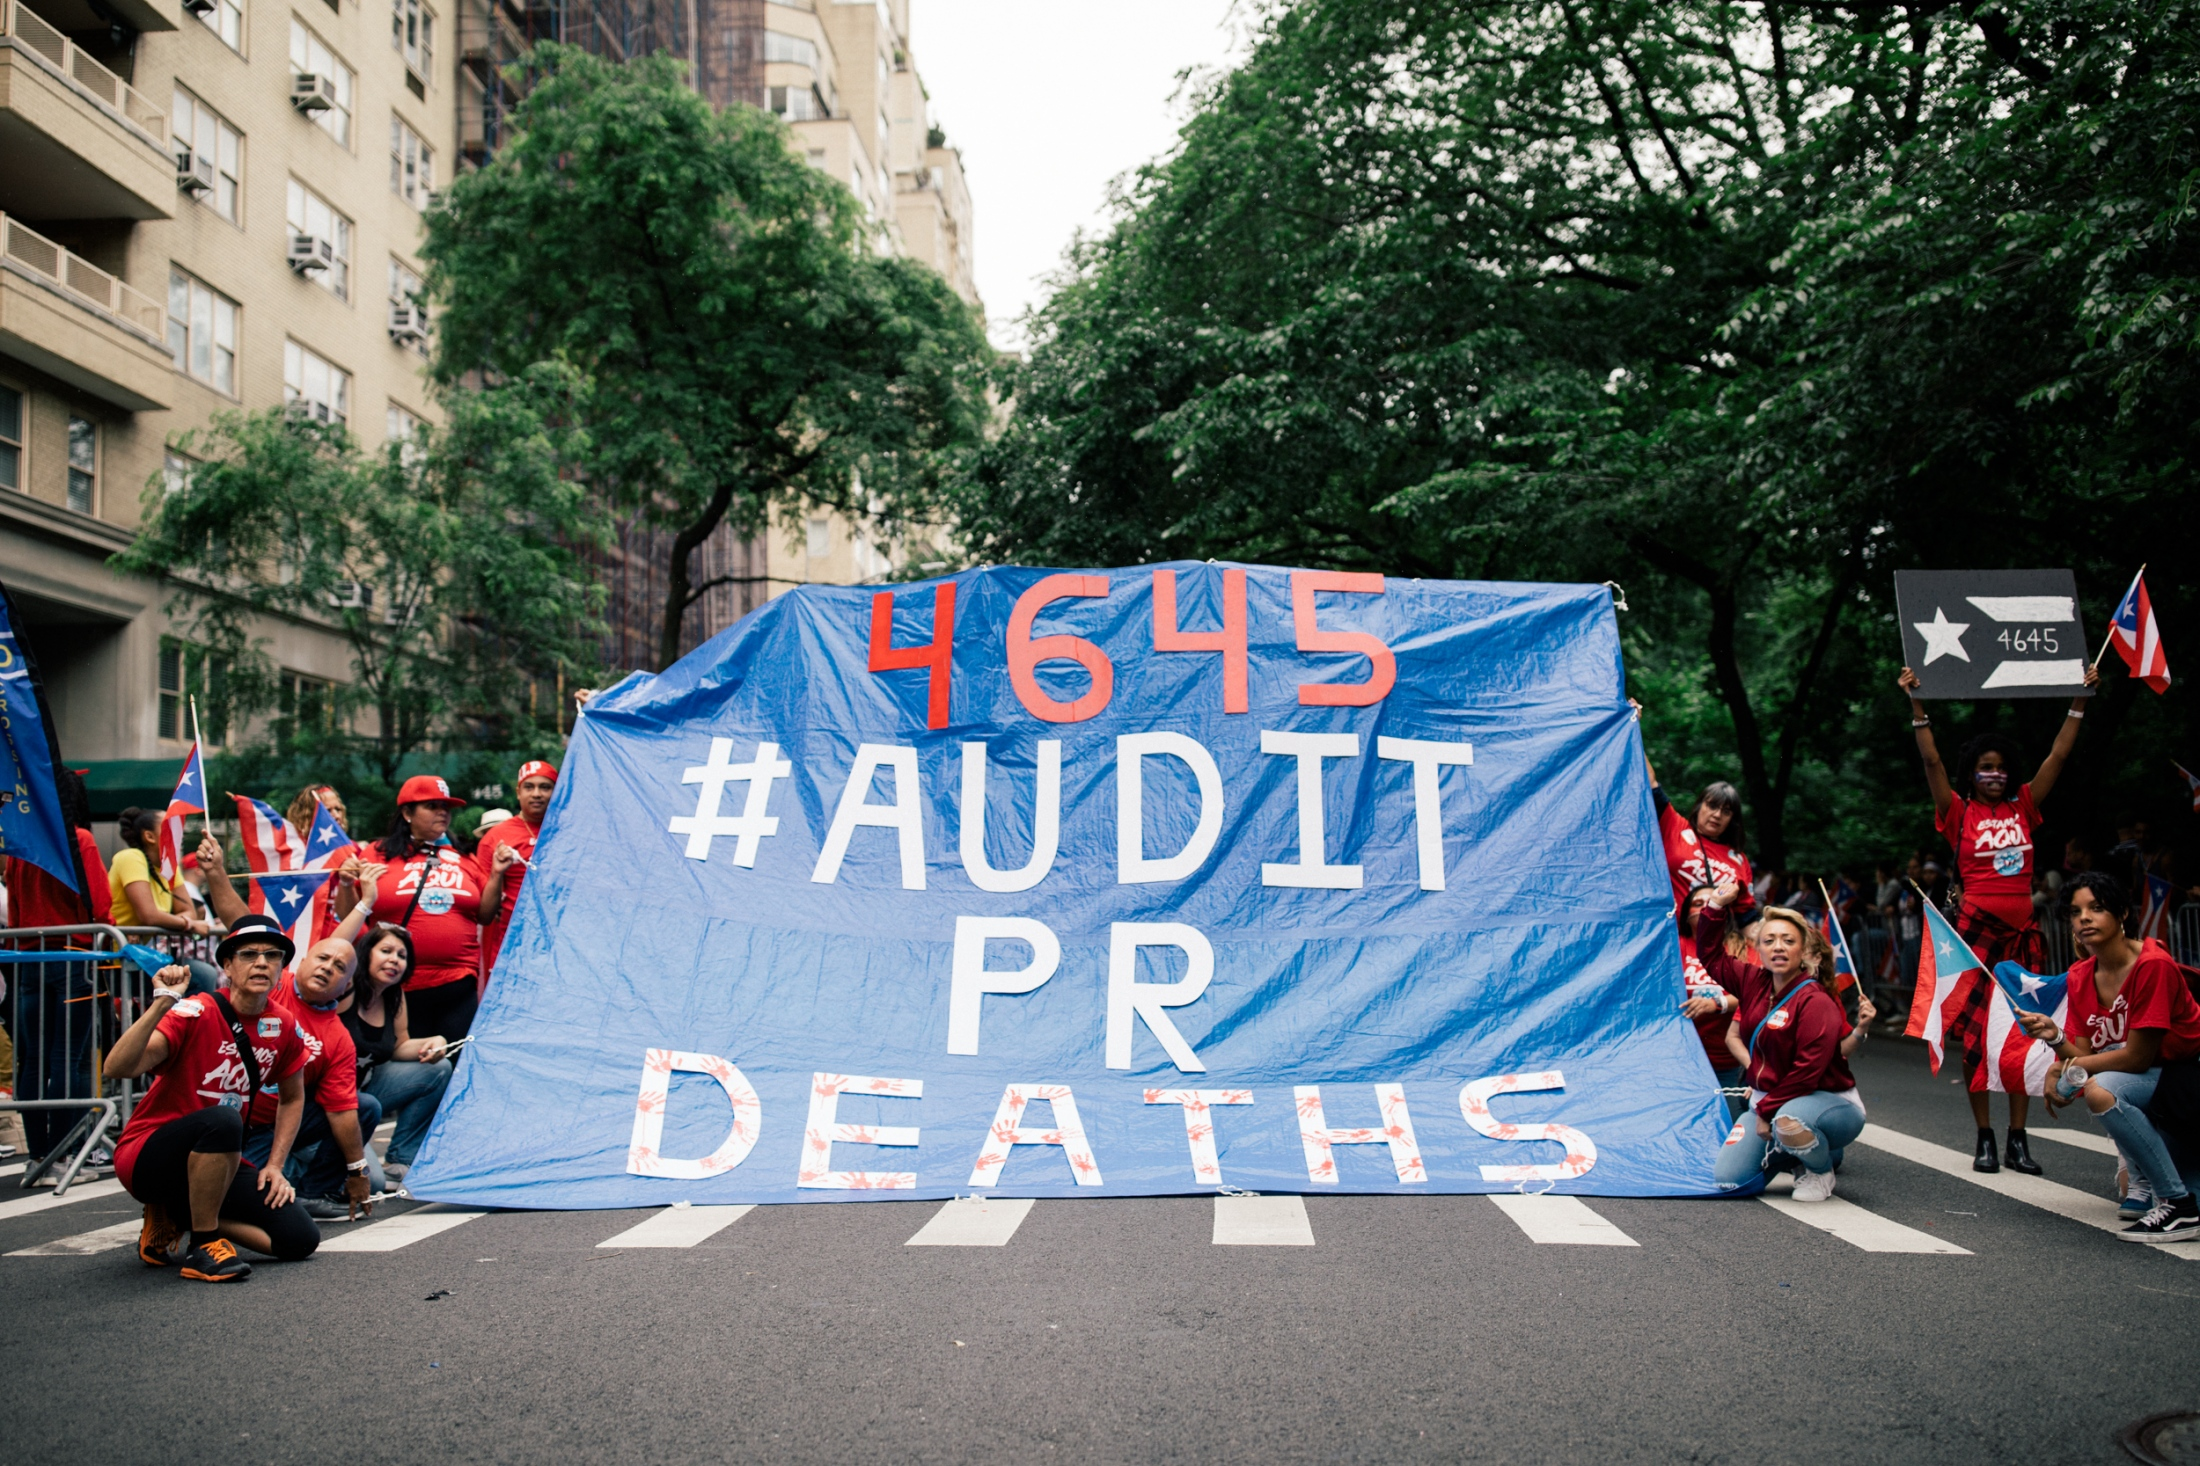 Marchers stop the parade briefly to hold open a large tarp displaying the midpoint of the newly released death toll estimates on Fifth Avenue and East 76th Street.